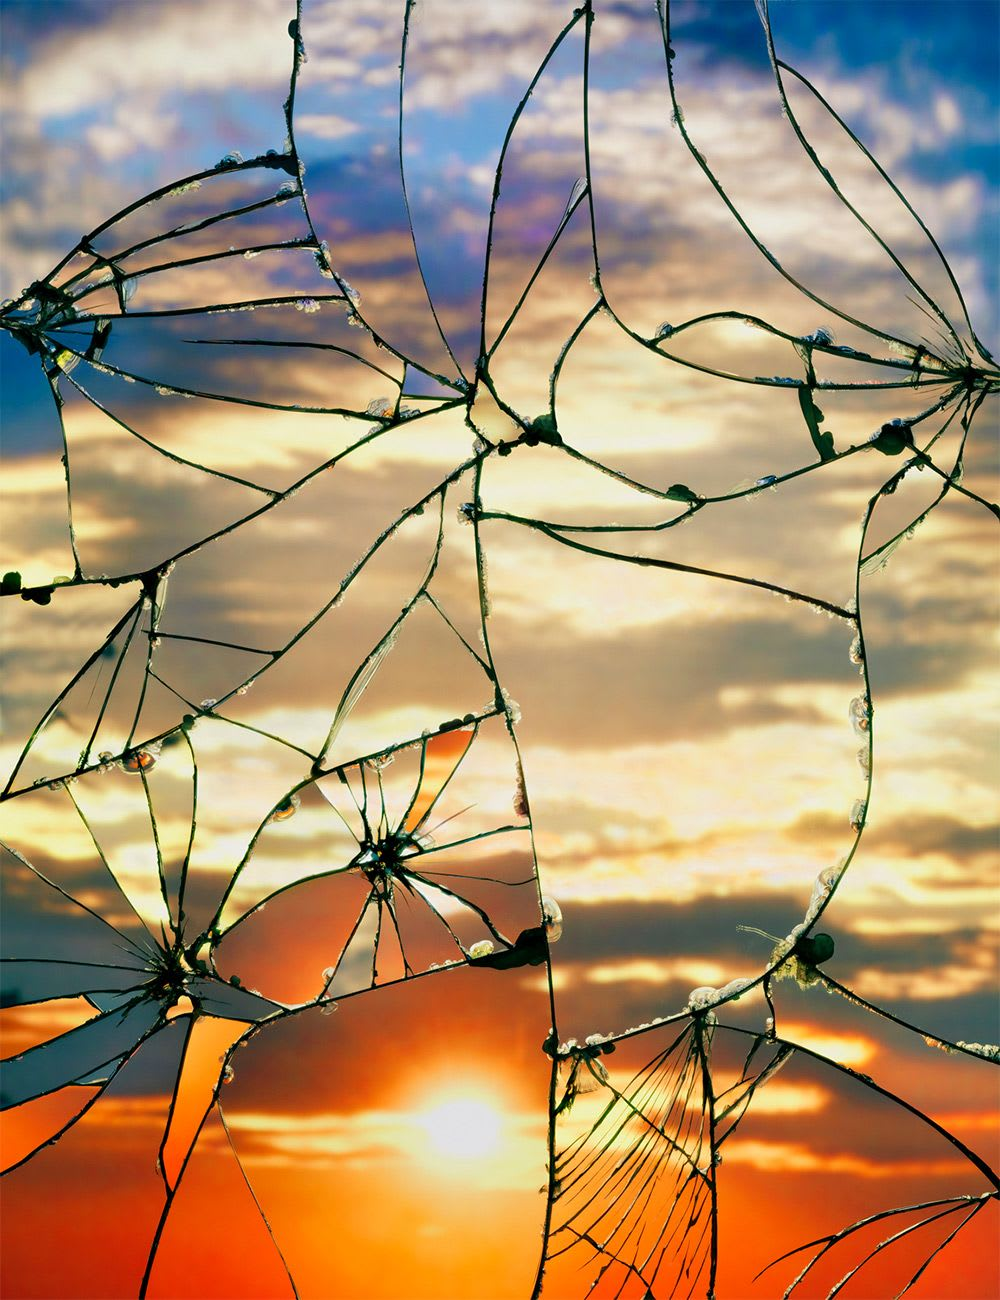 Sunset on a shattered mirror